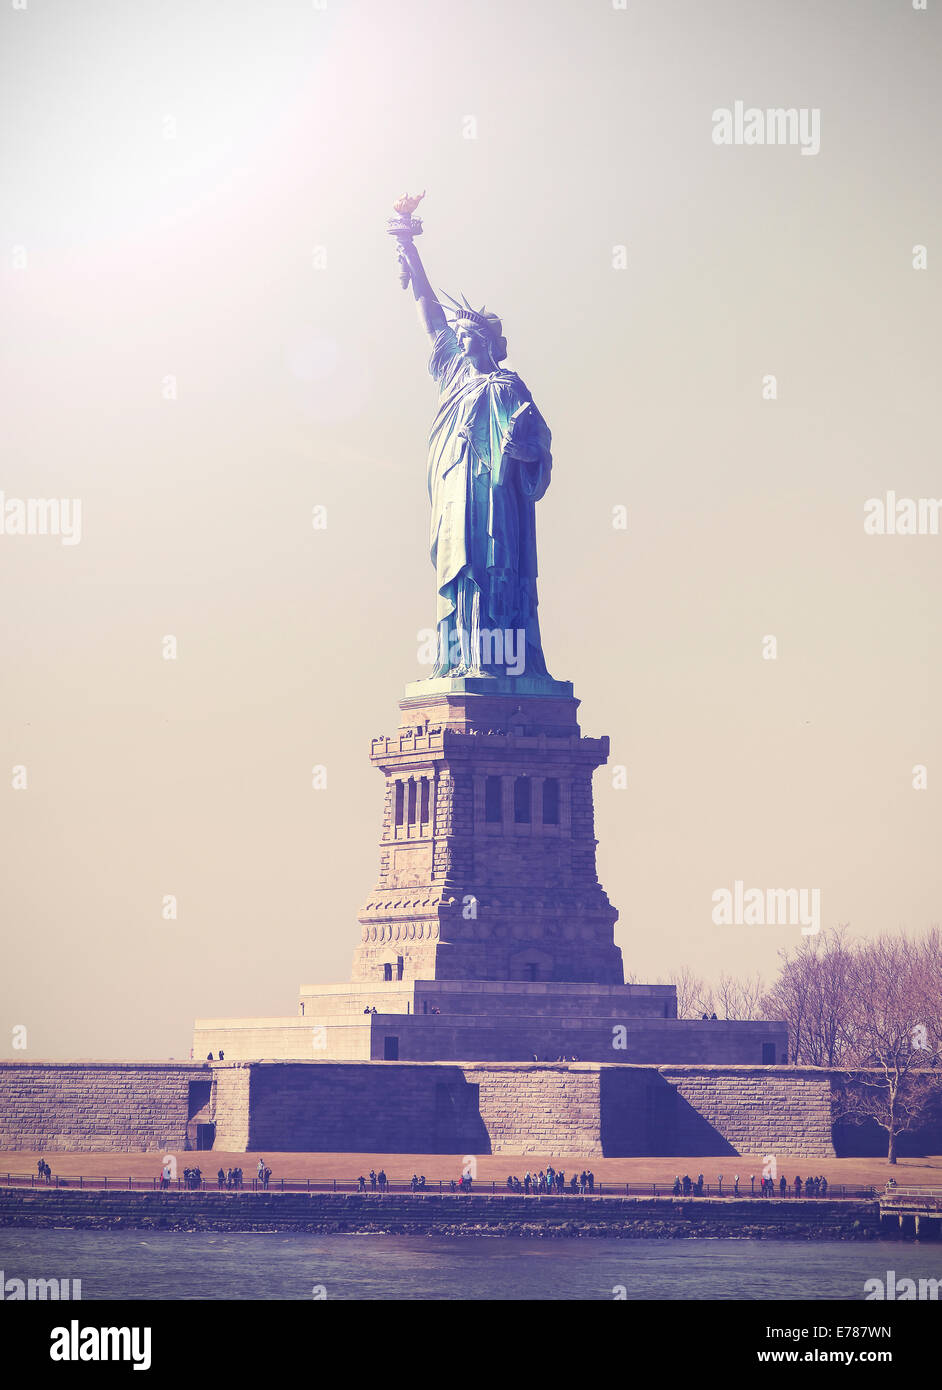 Vintage picture of Statue of Liberty, NYC, USA. - Stock Image